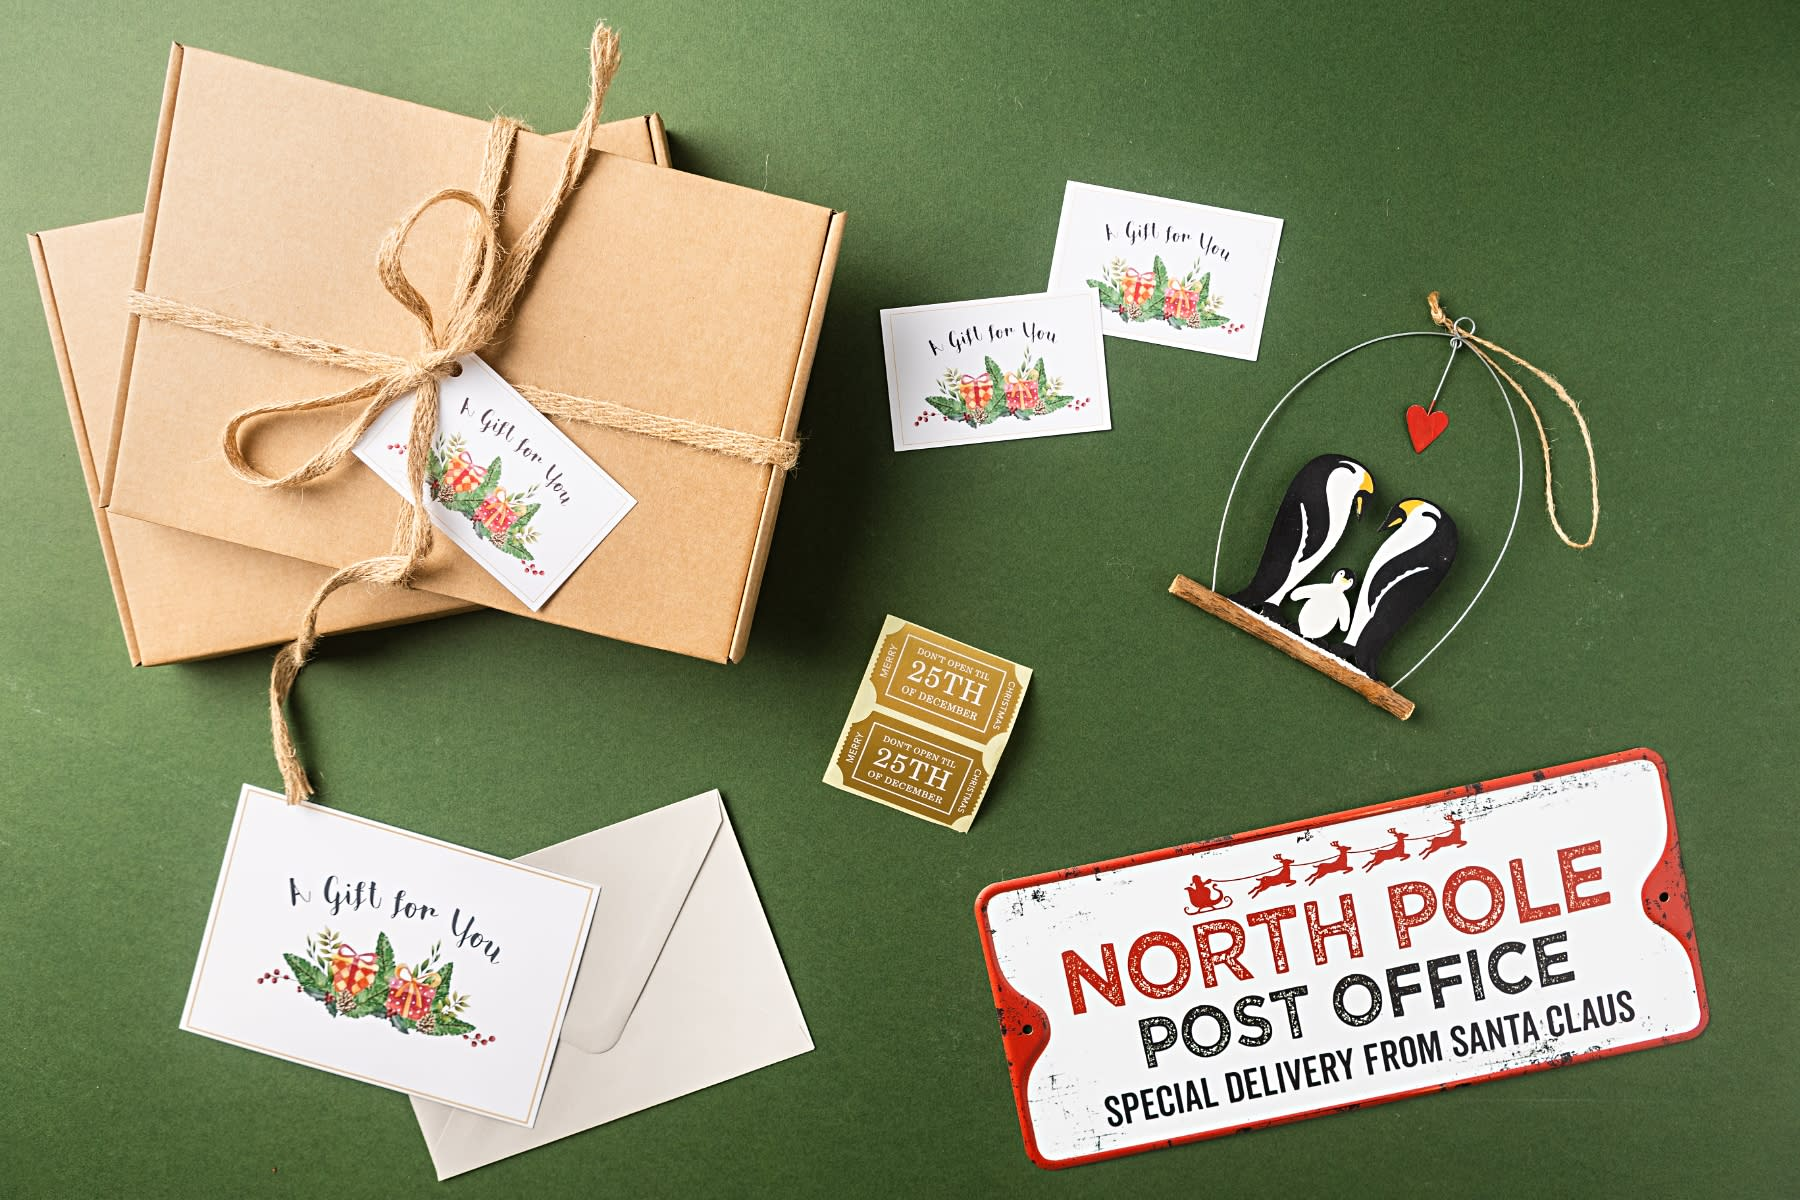 A flat lay image of our letterbox gift accessories including our mail boxes, stickers and 'A gift for you' card.